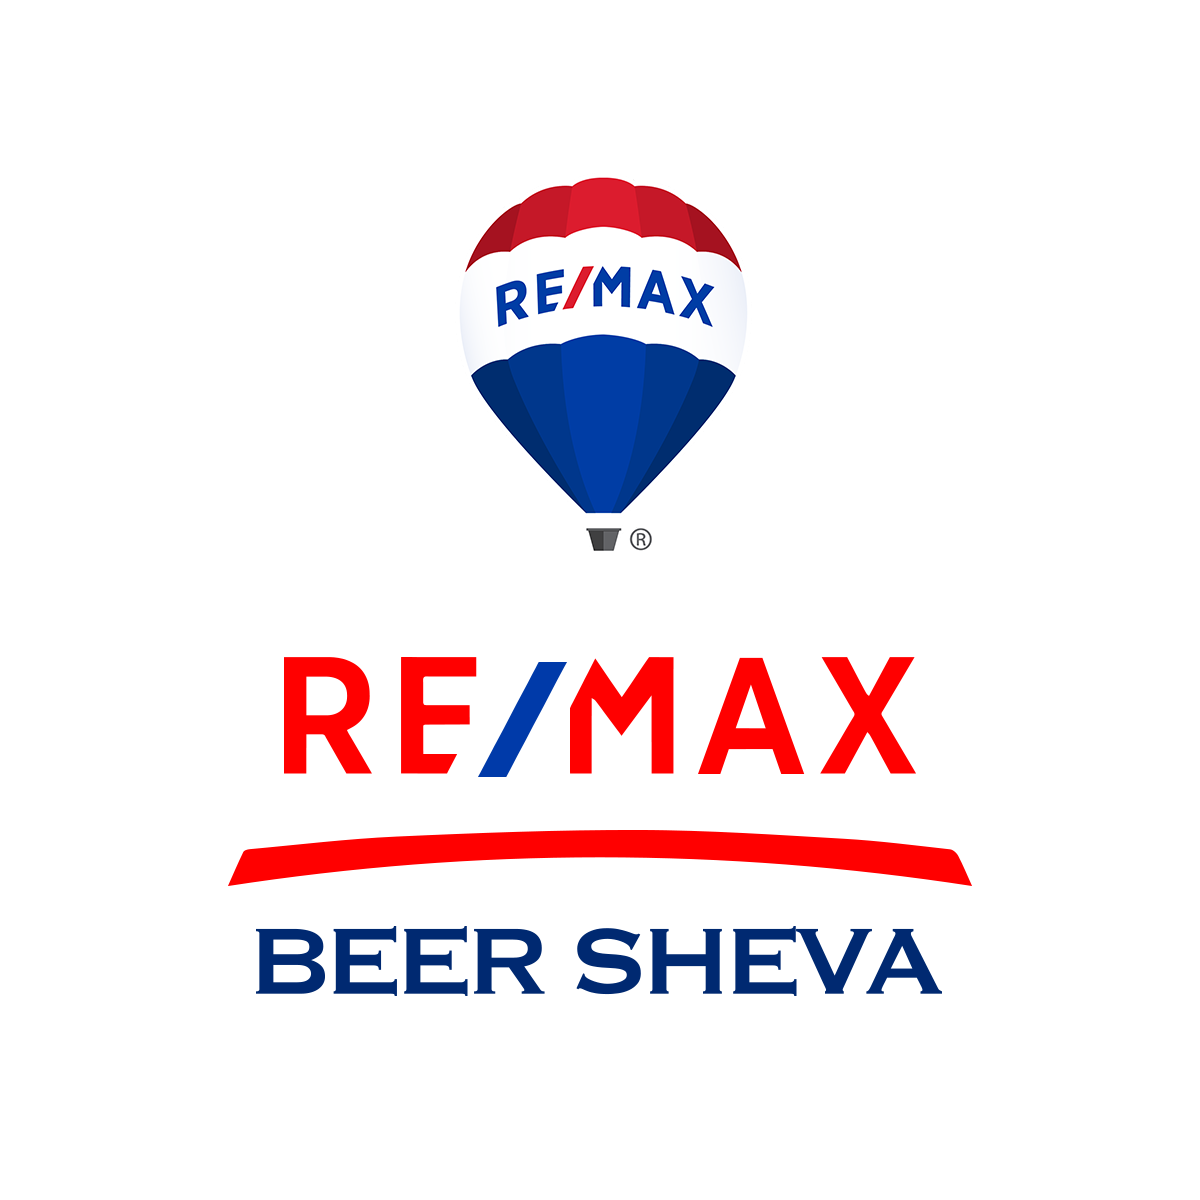 רימקס באר שבע - Remax beer sheva